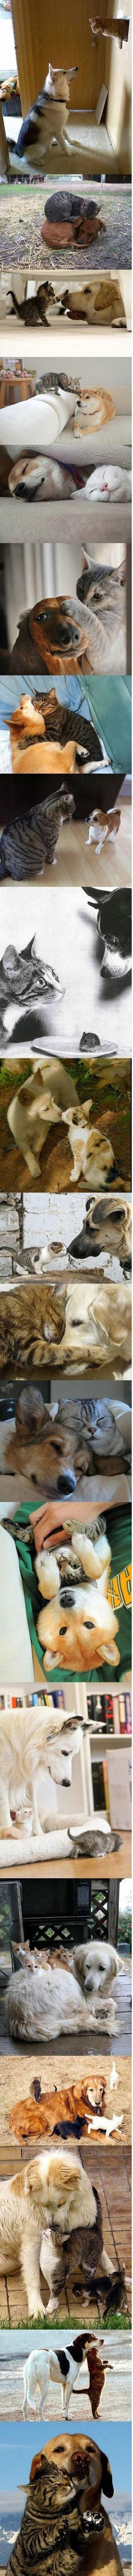 Cat and dog friendships!